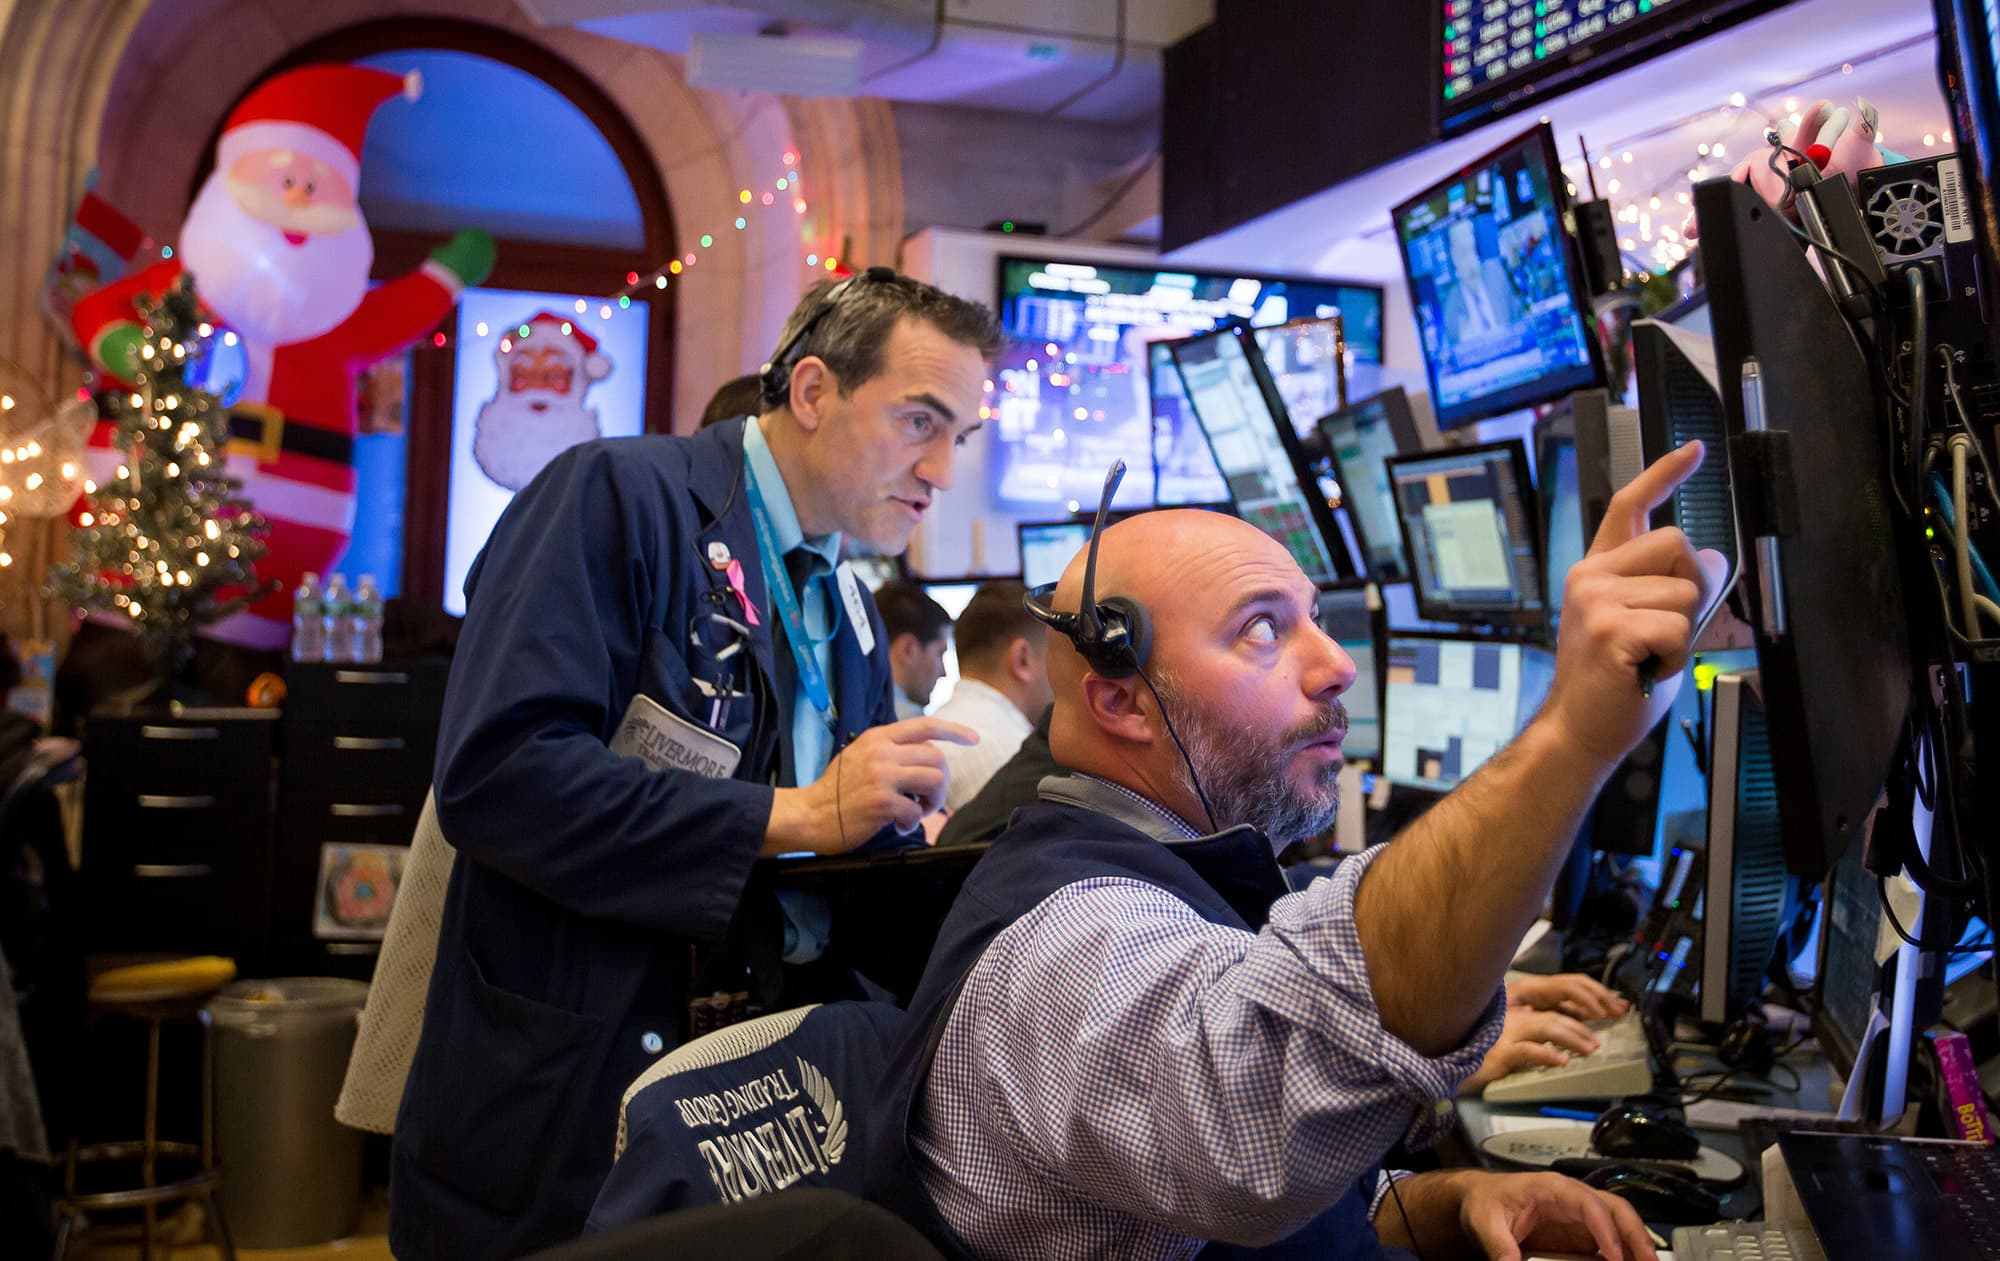 Market closes early, Santa rally period begins, Richmond Fed data: 3 things to watch for on Tuesday